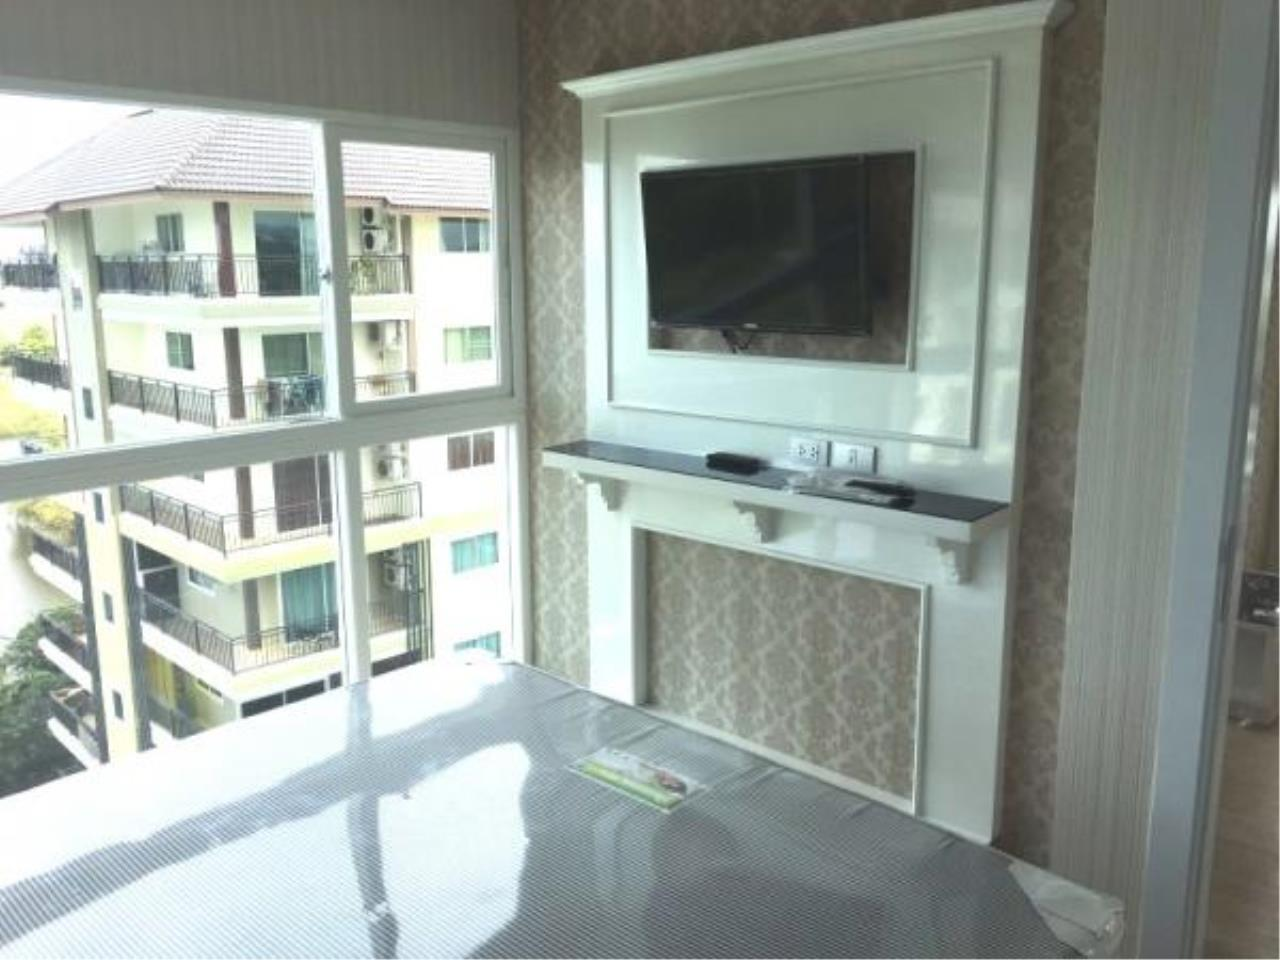 RE/MAX Town & Country Property Agency's Condo for sale in Jomtien 5